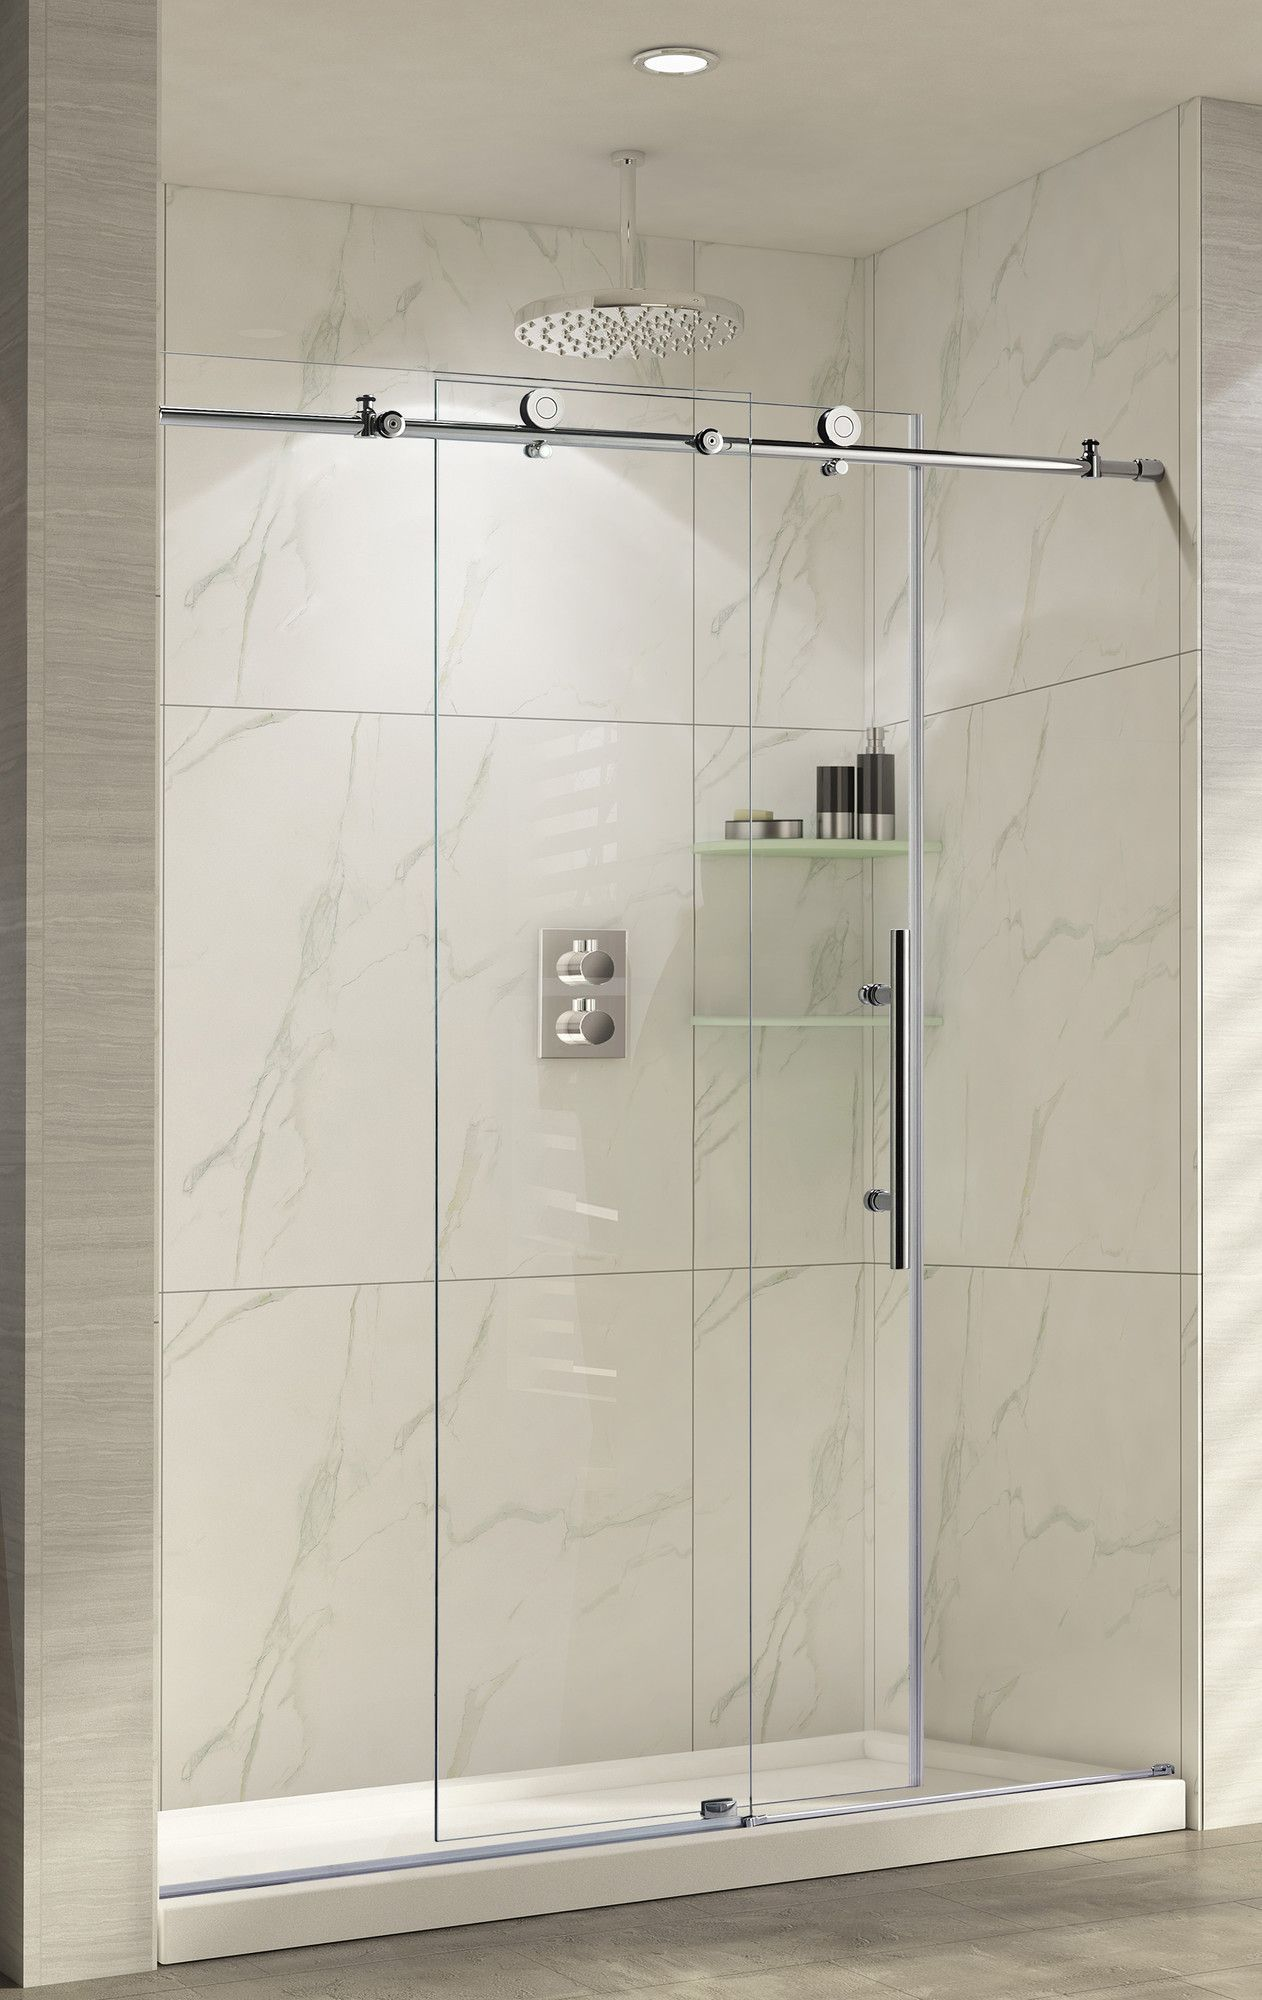 Features Frameless Glass Creates Serenity And An Open Space Design Masterpiece Hardware Is Made Of High Quality Stainless Steel Handle Rollers